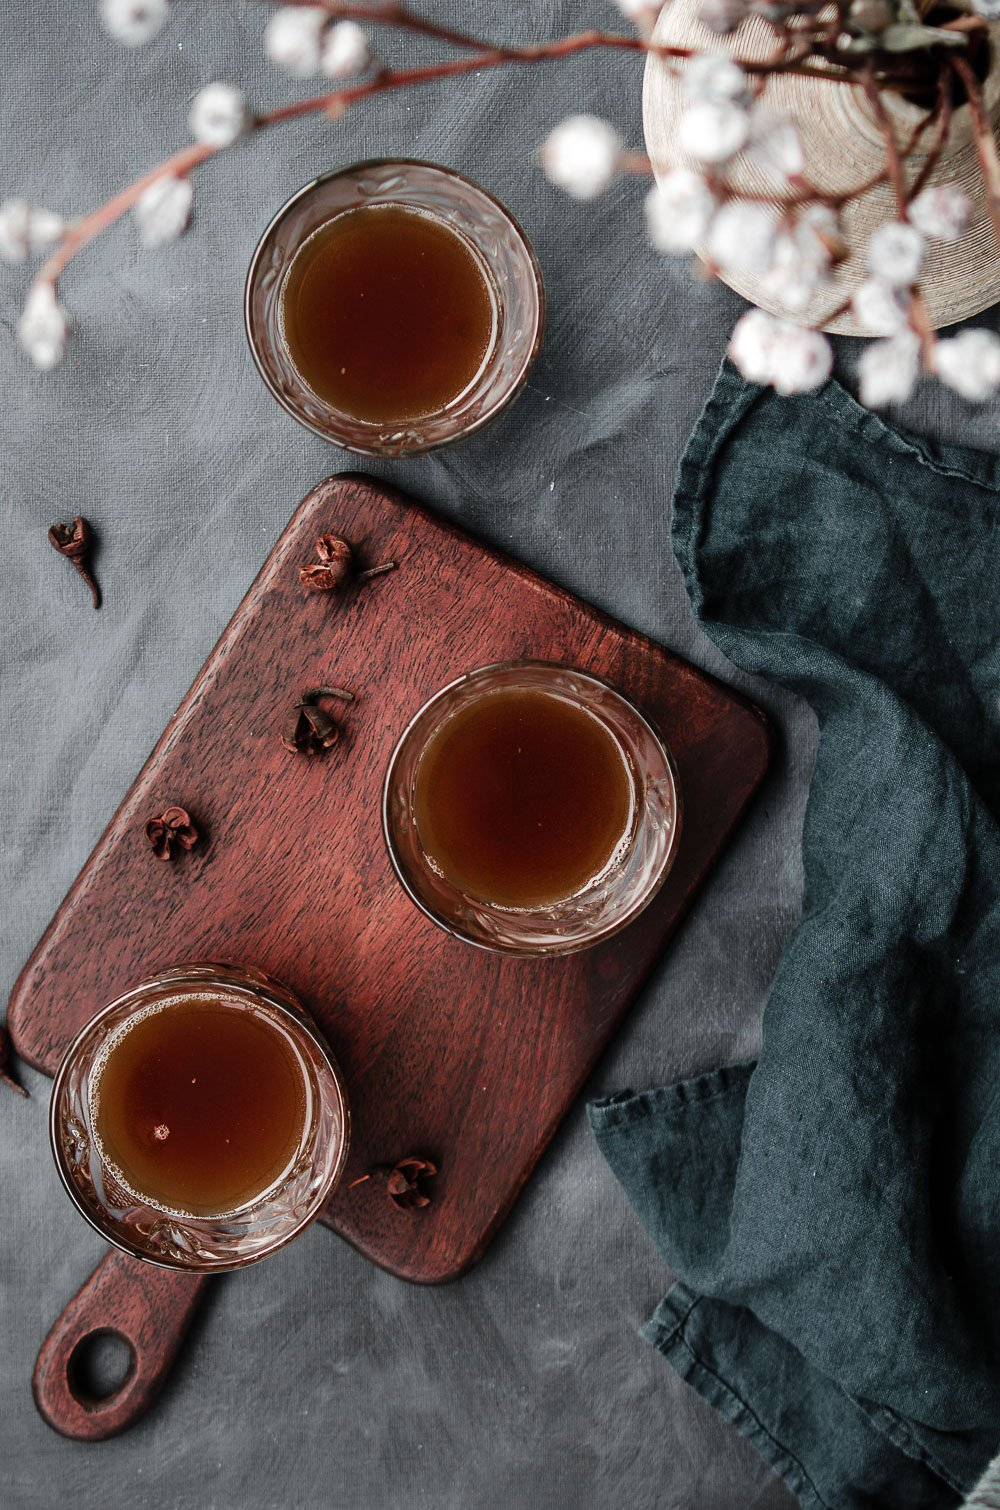 Slow Living   Why broth might be the best drink ever!